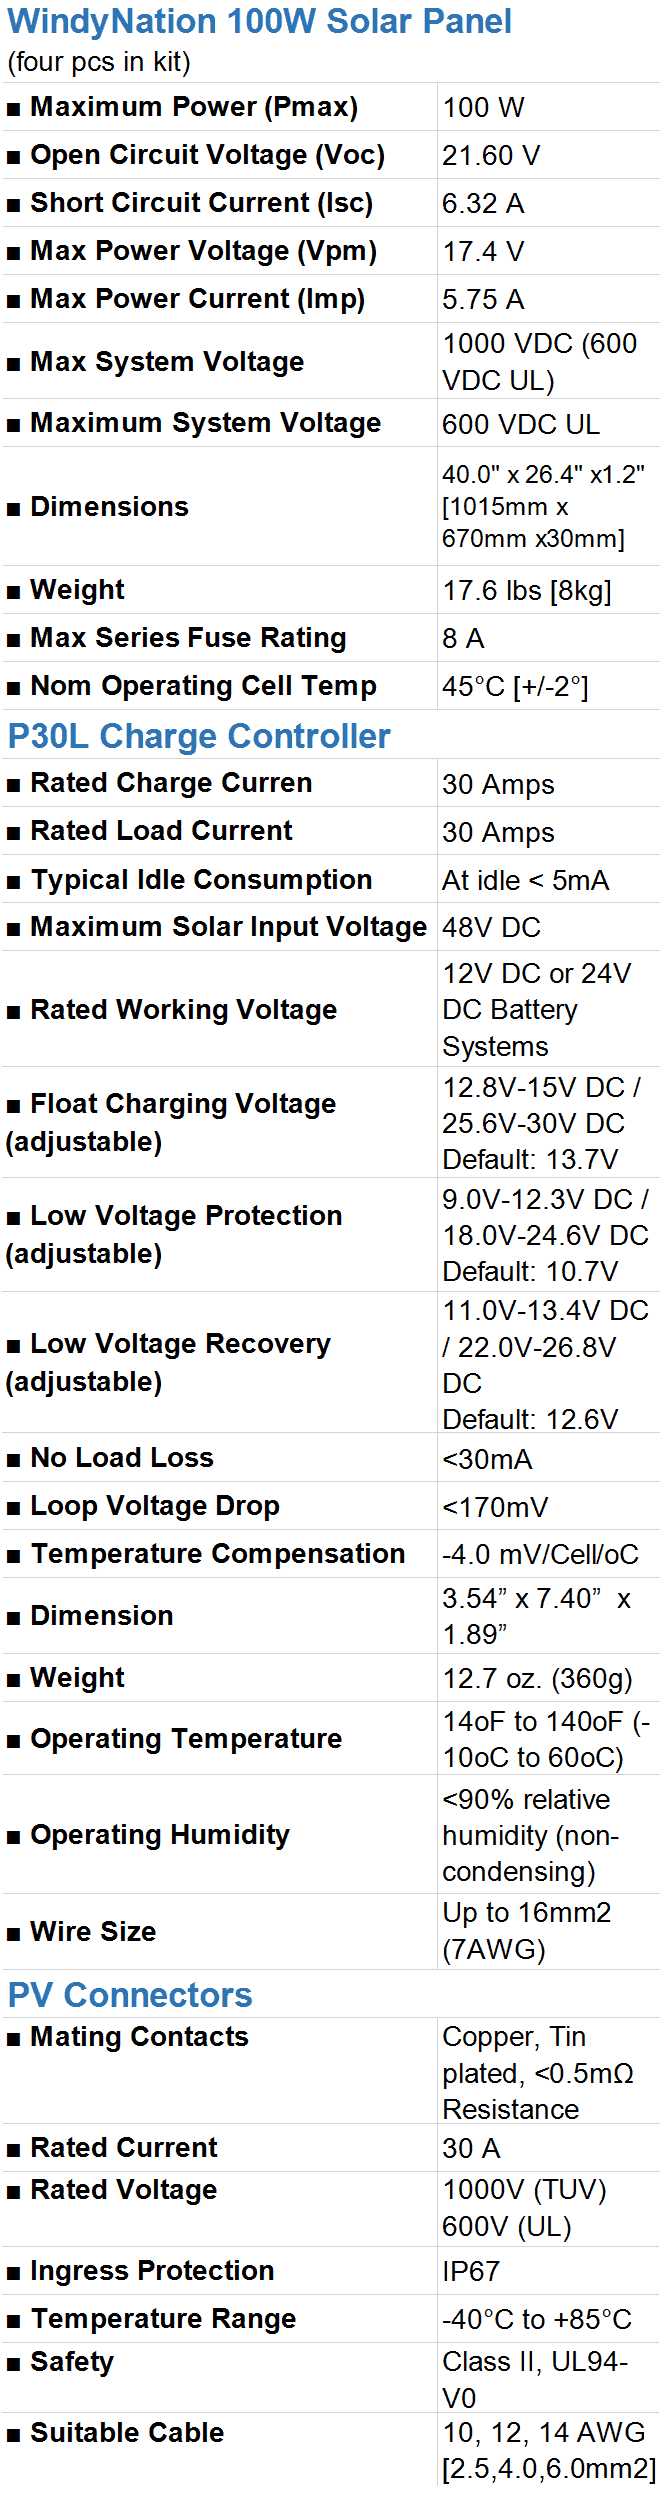 WindyNation 400W Solar Panel Kit Specifications